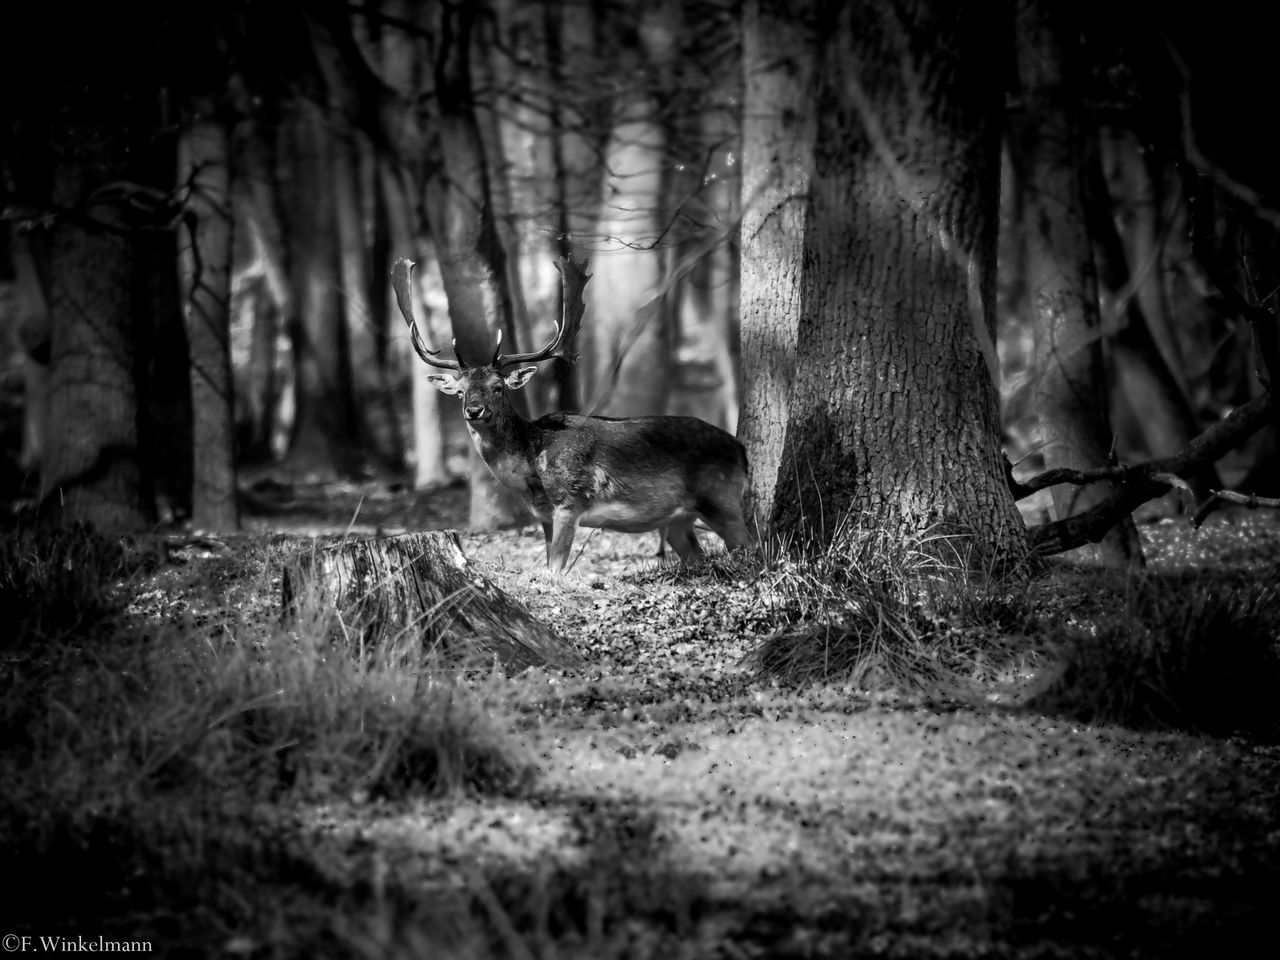 Nature Forest Blackandwhite Black And White Black&white Black And White Collection  Black And White Photography Deer Sighting Deers Nature Beauty Peace Deer Deers Animals In The Wild Animal Wildlife Animals